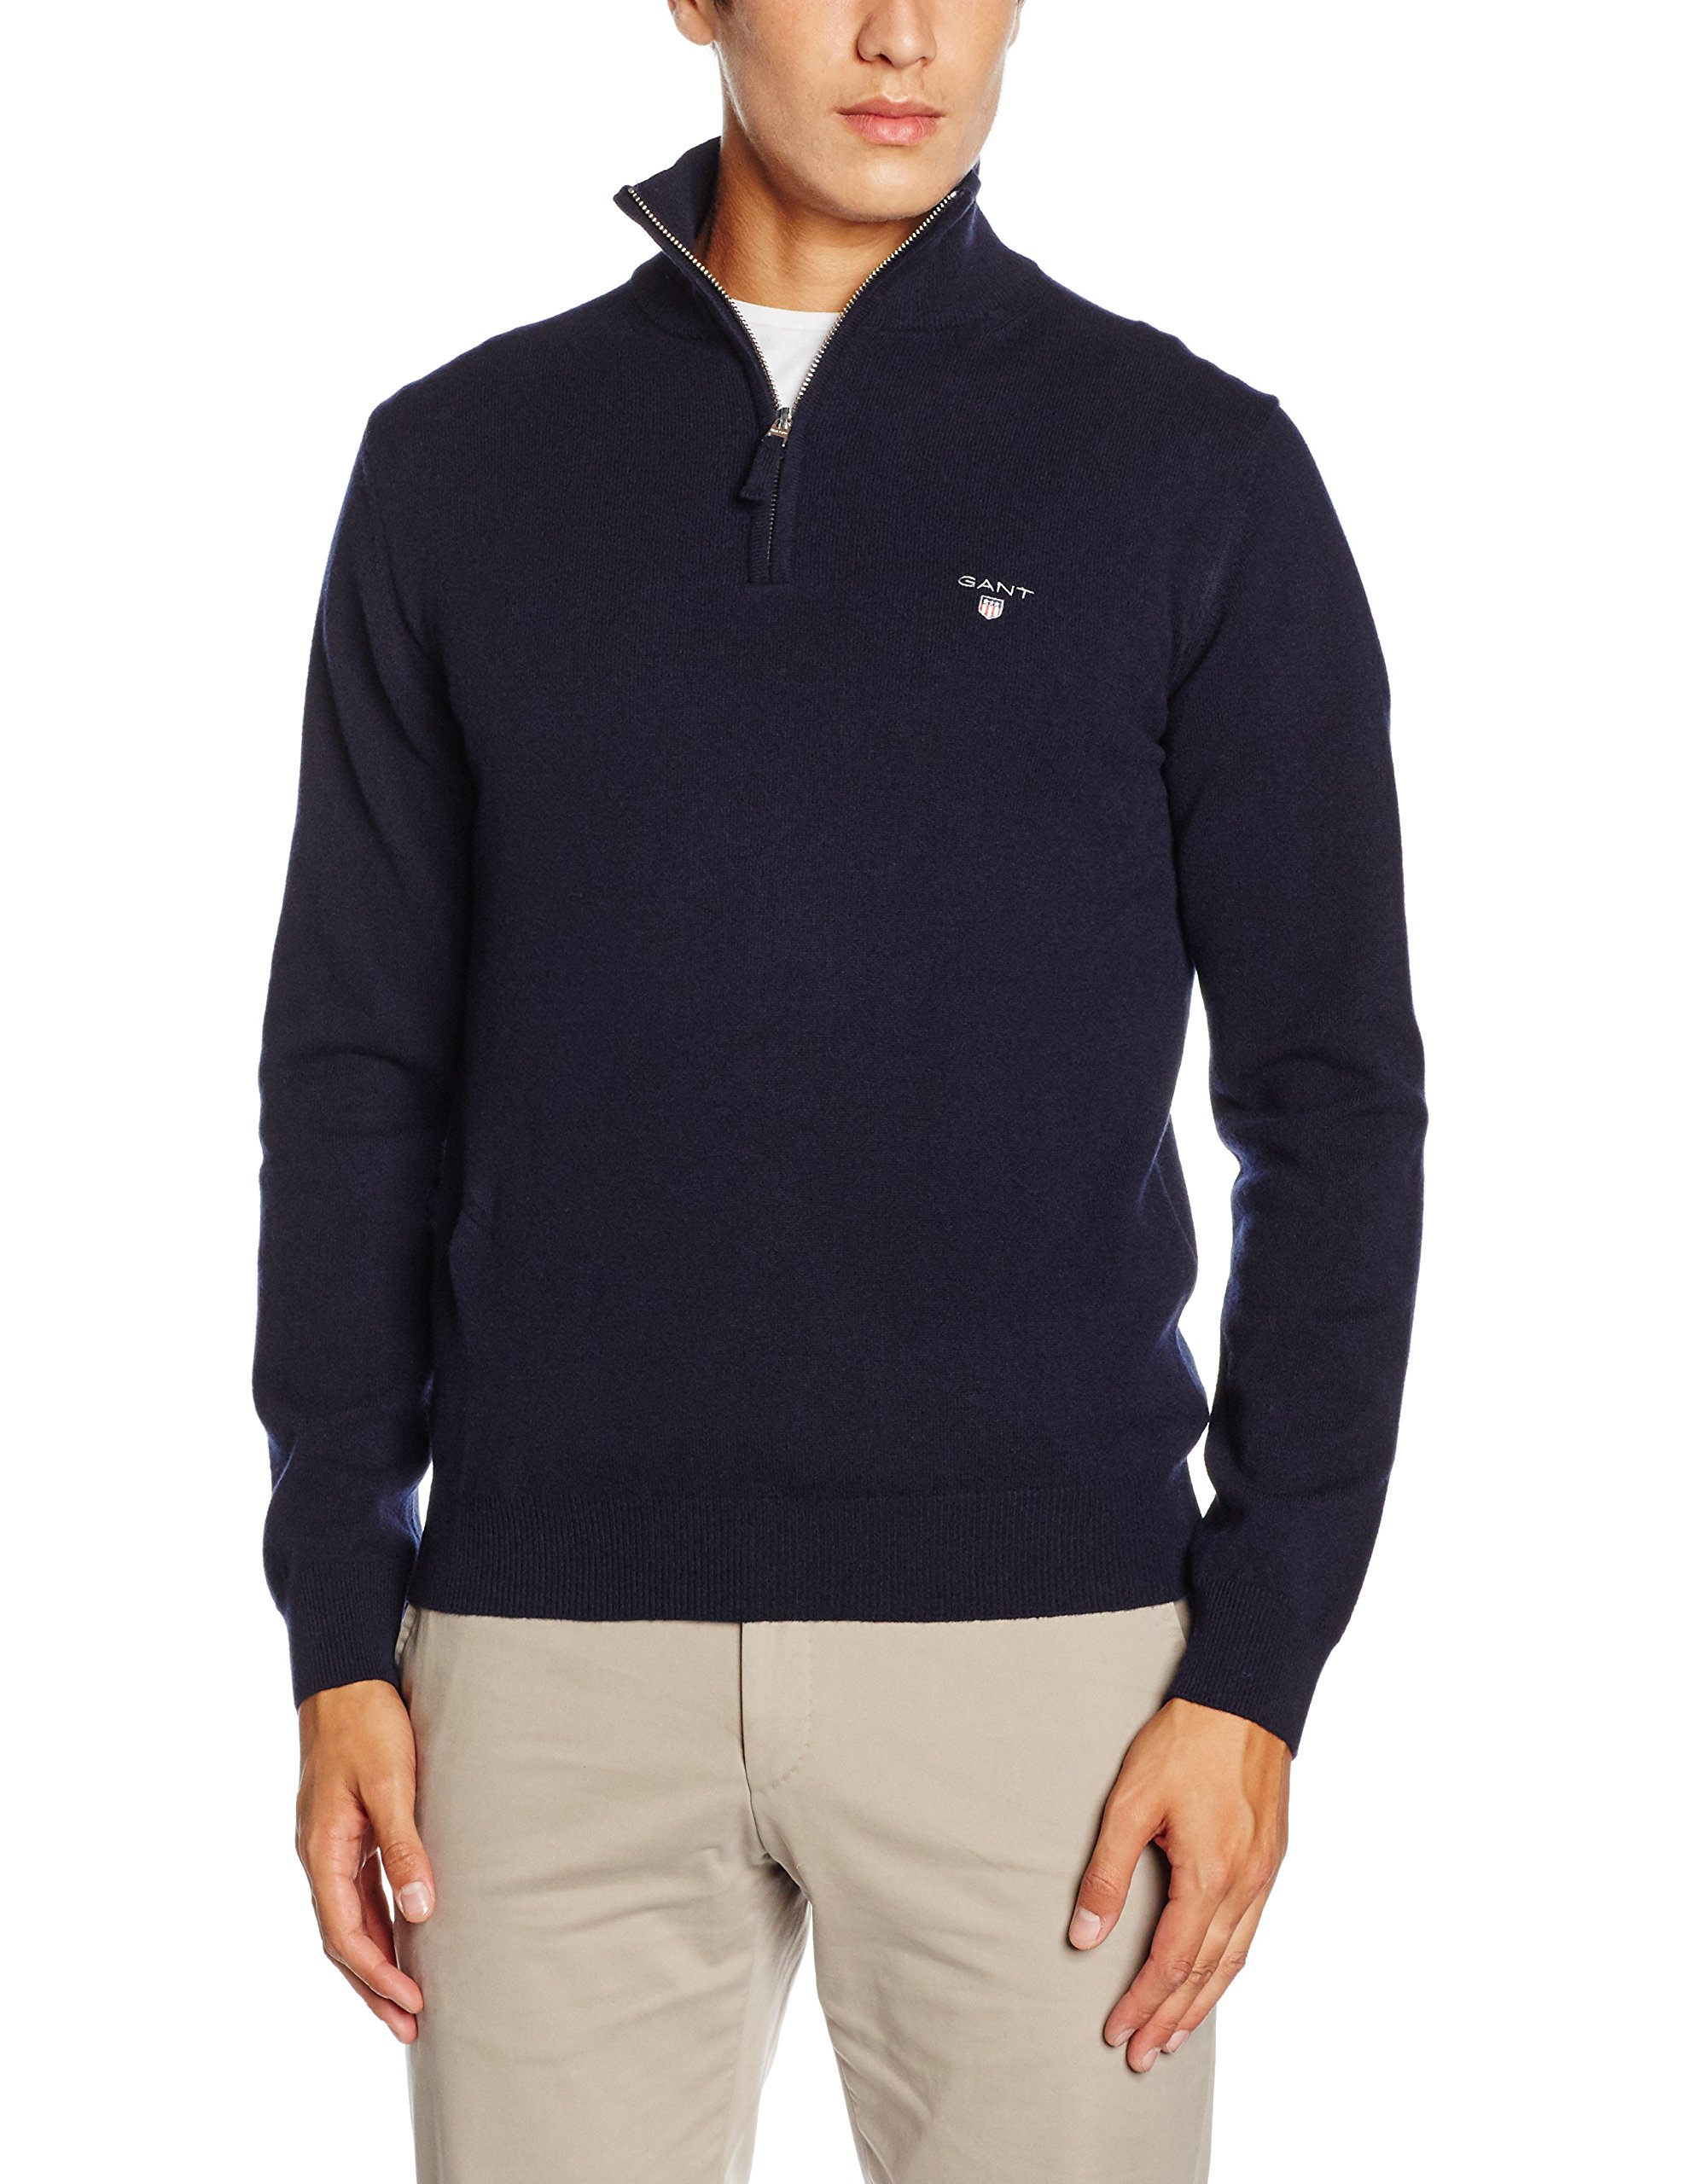 GANT Super Fine Lambswool Mens Zip M Marine